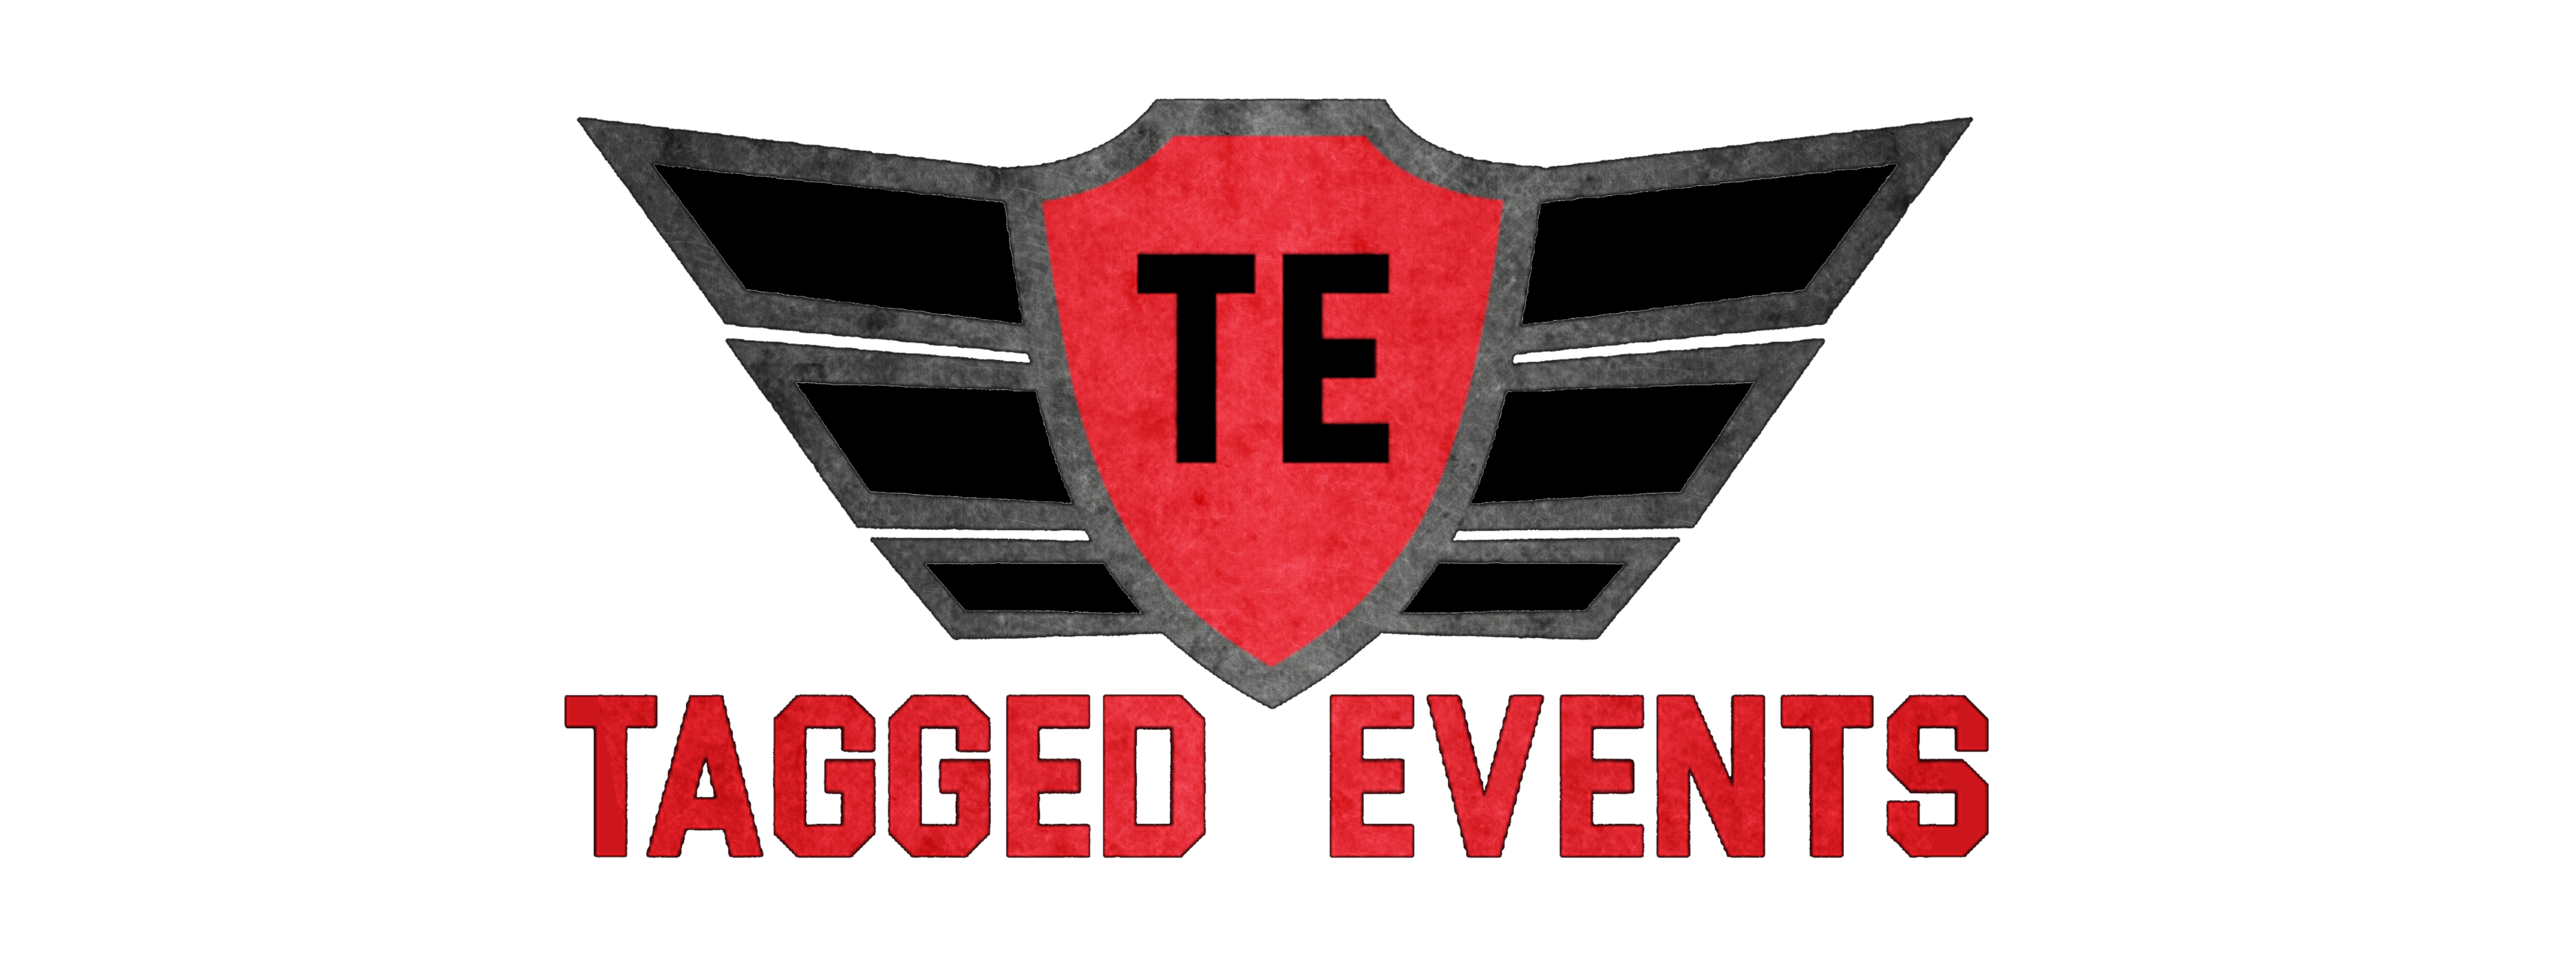 Tagged Events